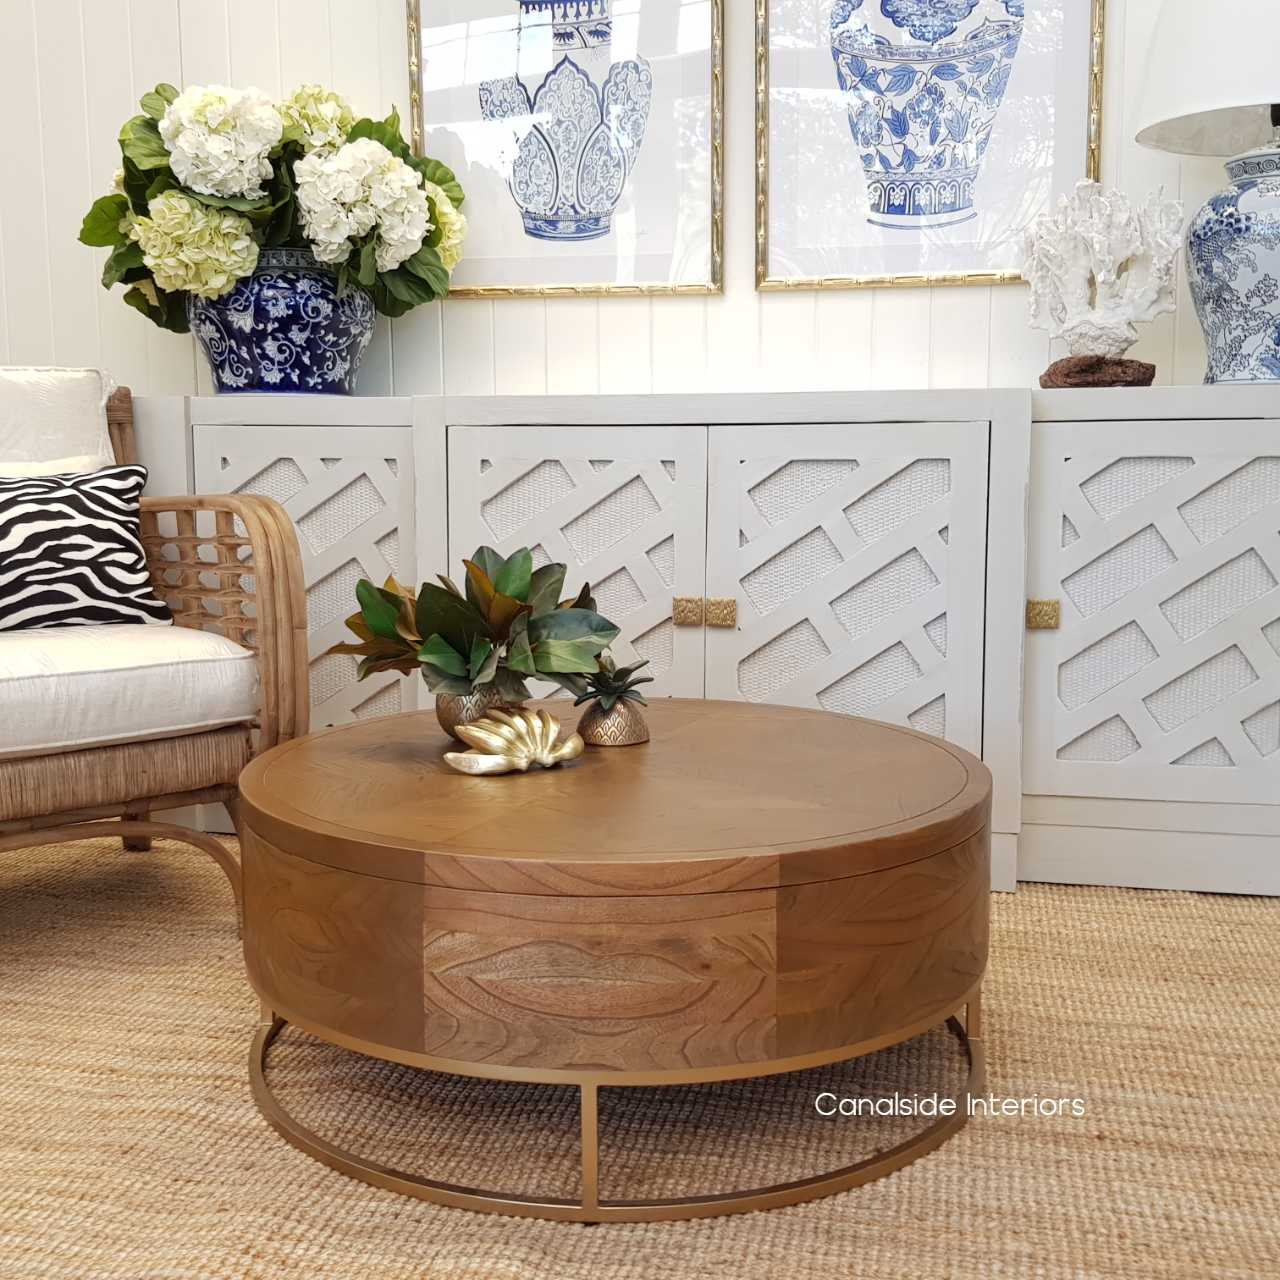 Huxley Mosaic Gold Inlay Round Coffee Table With Storage Sold Out Canalside Interiors